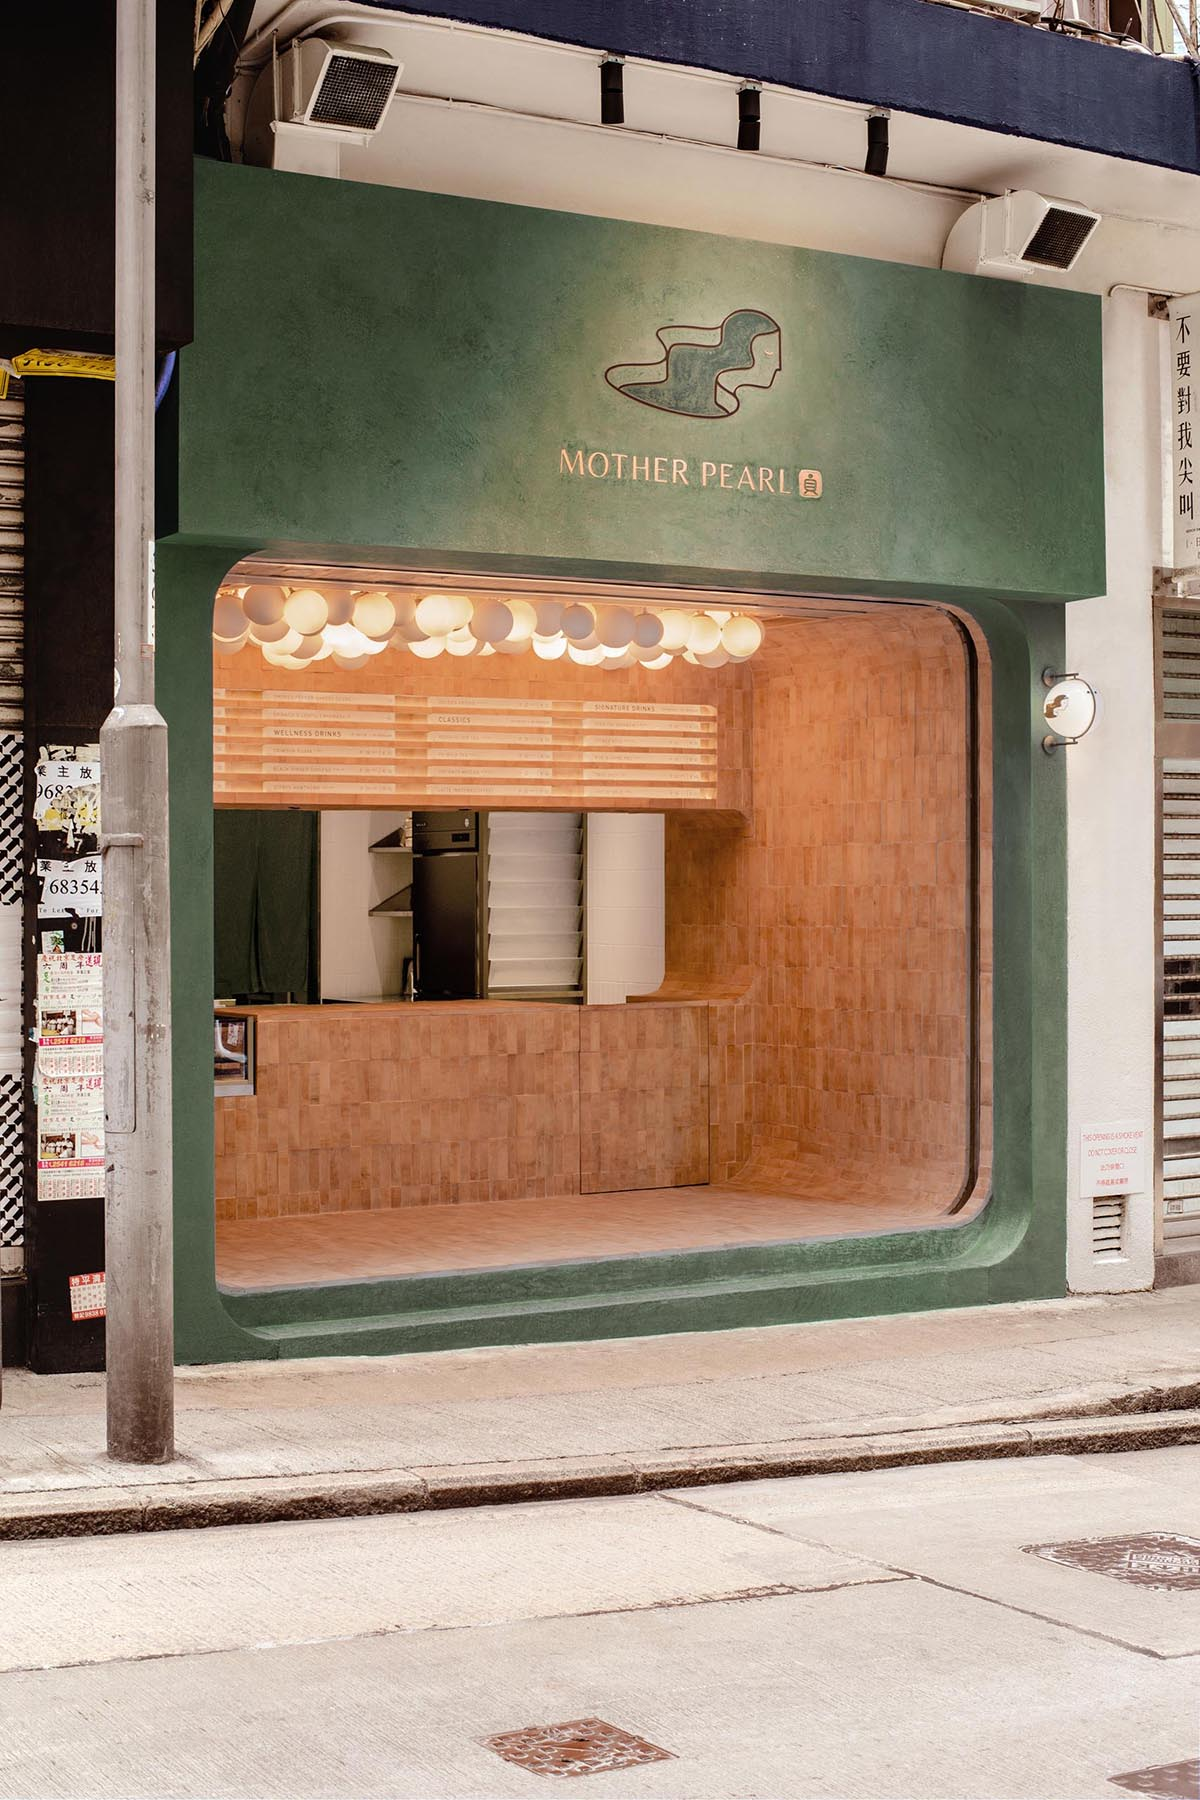 A modern bubble tea house with an olive green facade and a earth colored tiled interior.